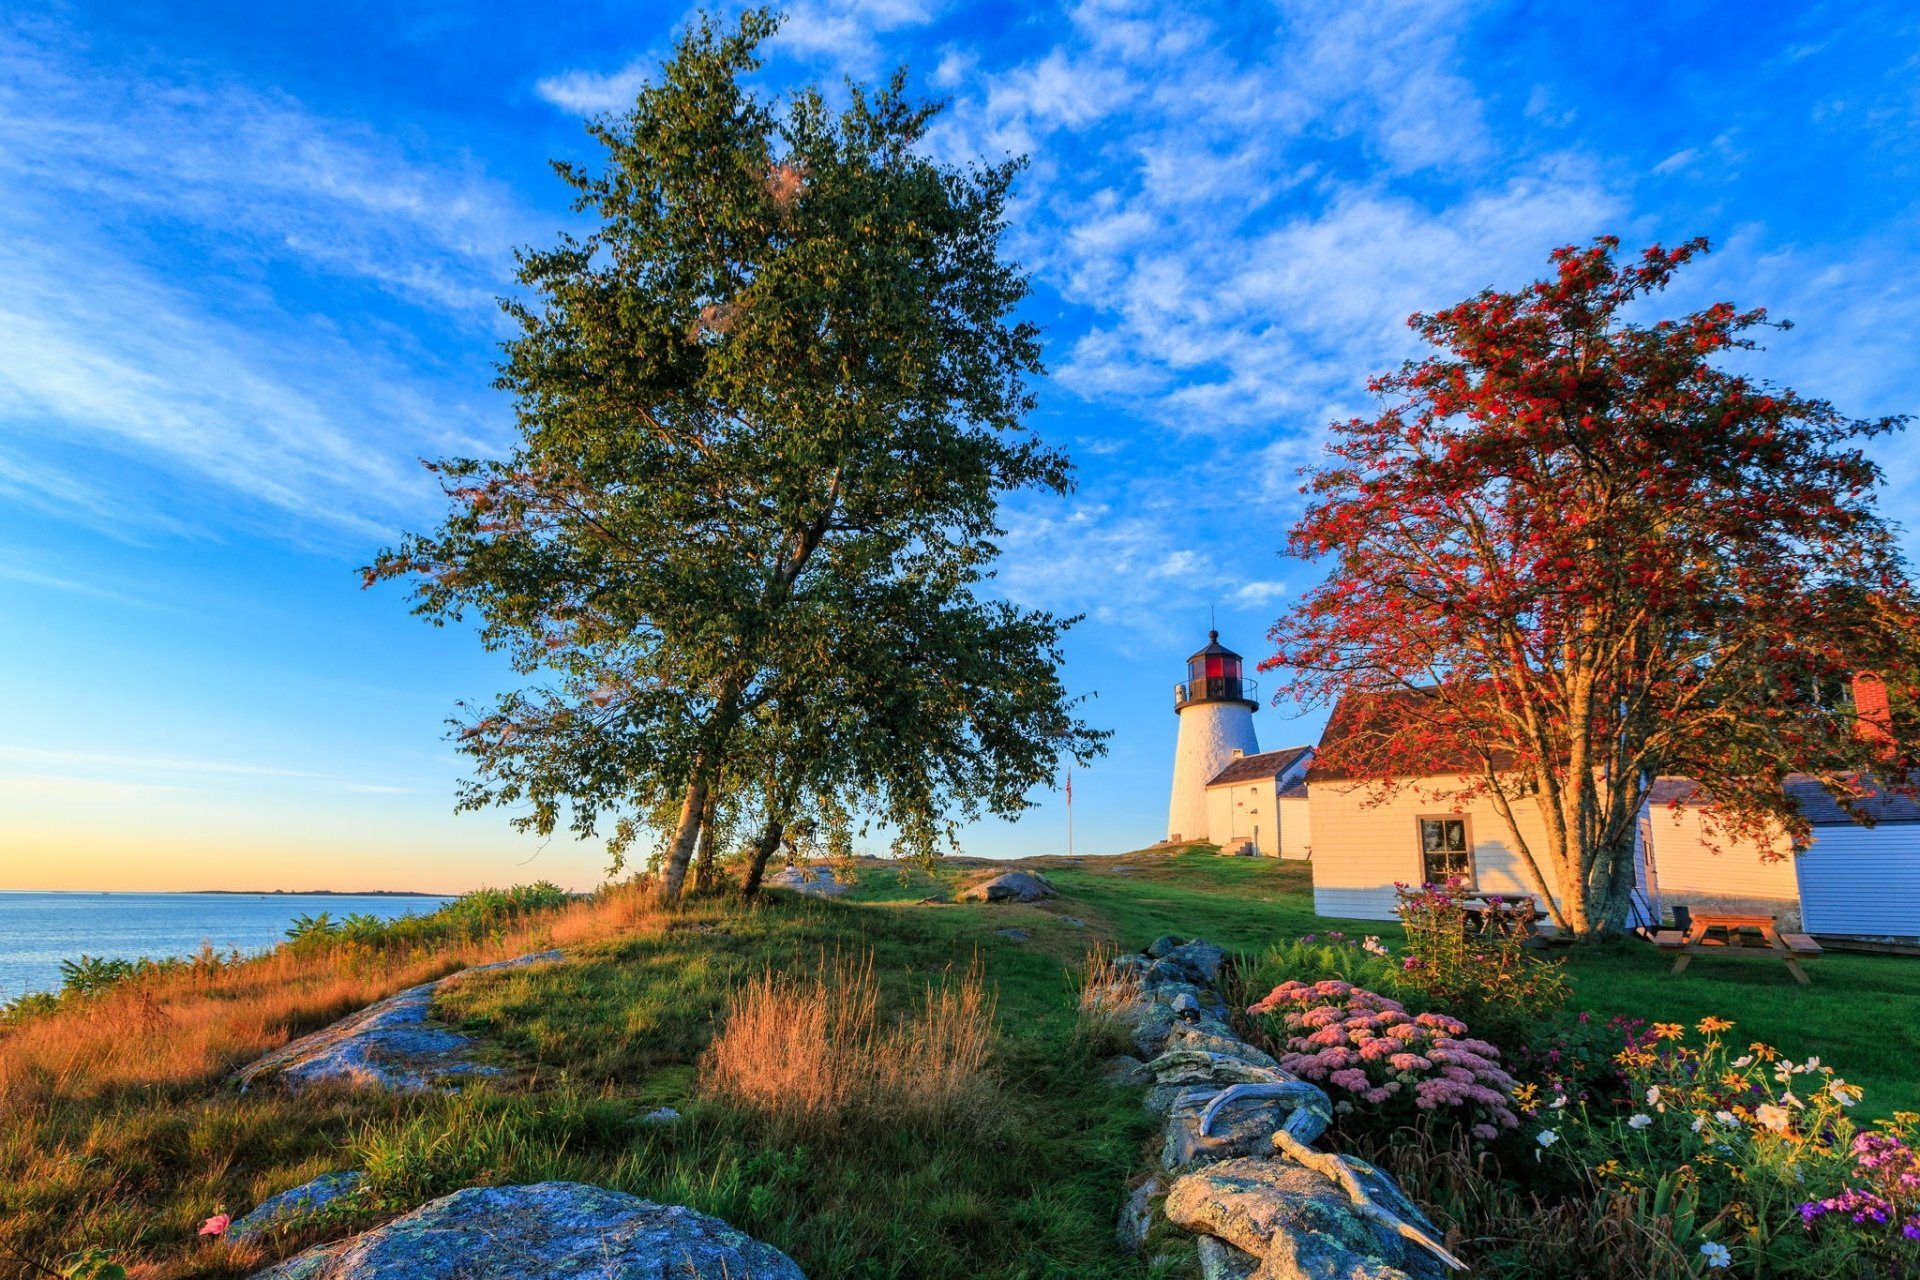 Lighthouse in springtime hd wallpaper background image 2048x1365 id 690486 wallpaper abyss - Backgrounds springtime ...